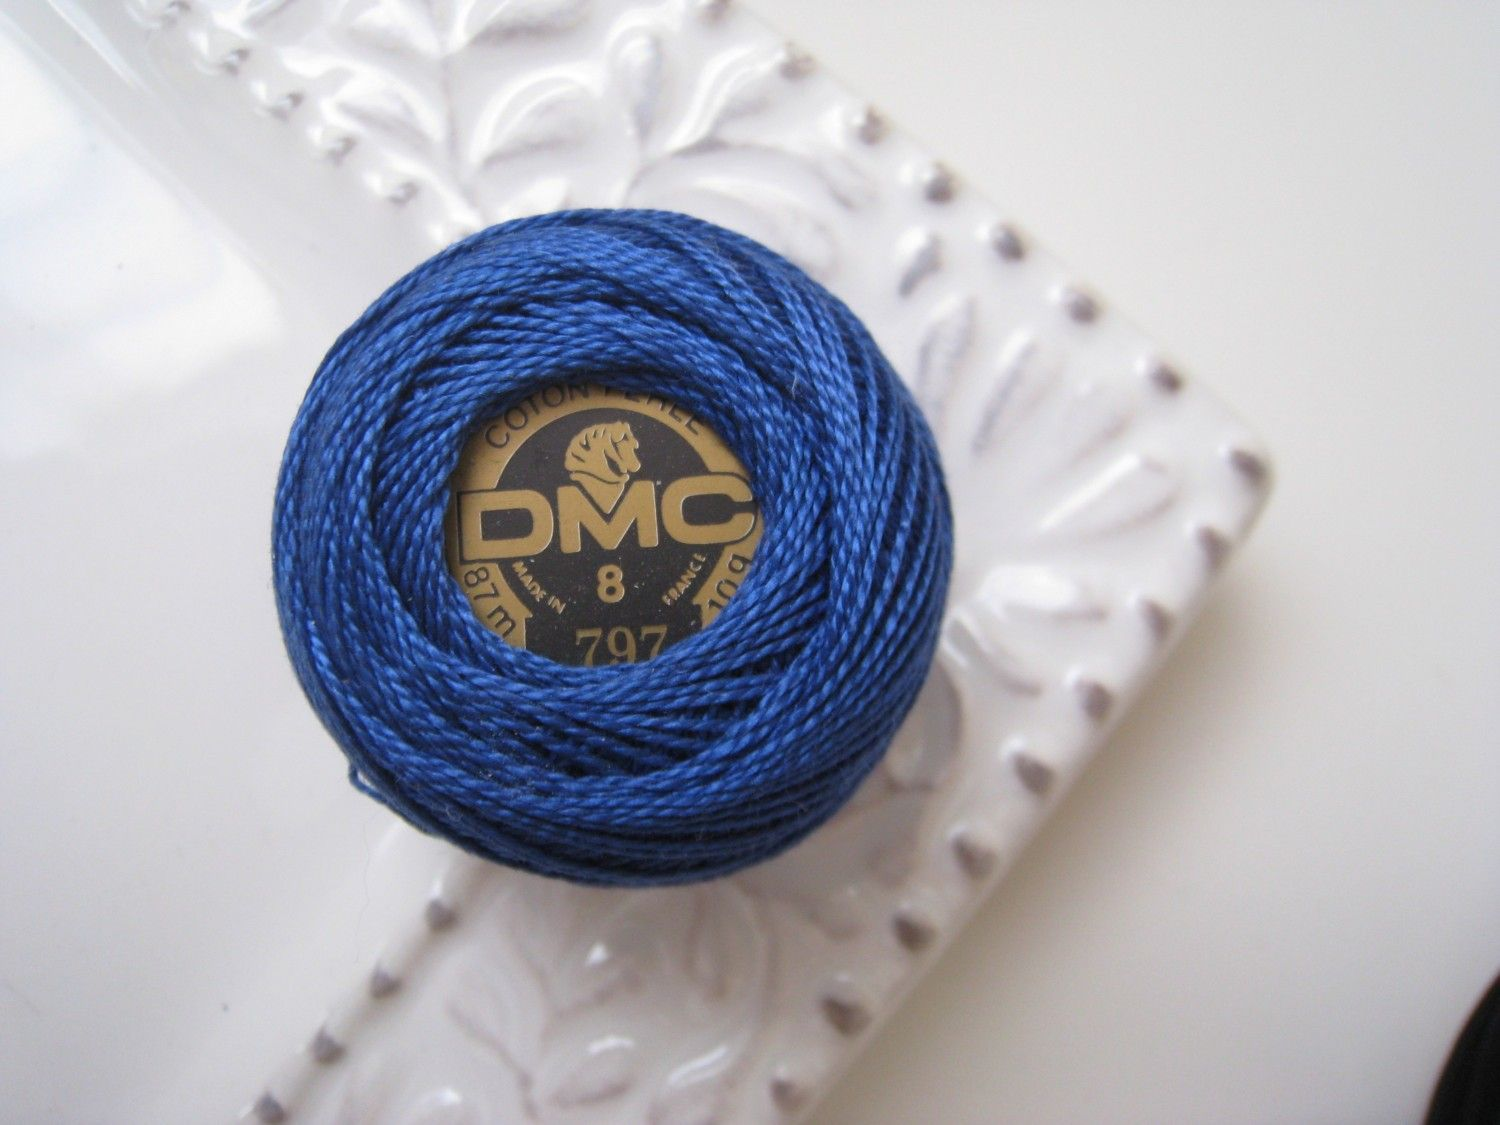 DMC Stranded Cotton Thread Colour 797 For Embroidery /& Cross stitch